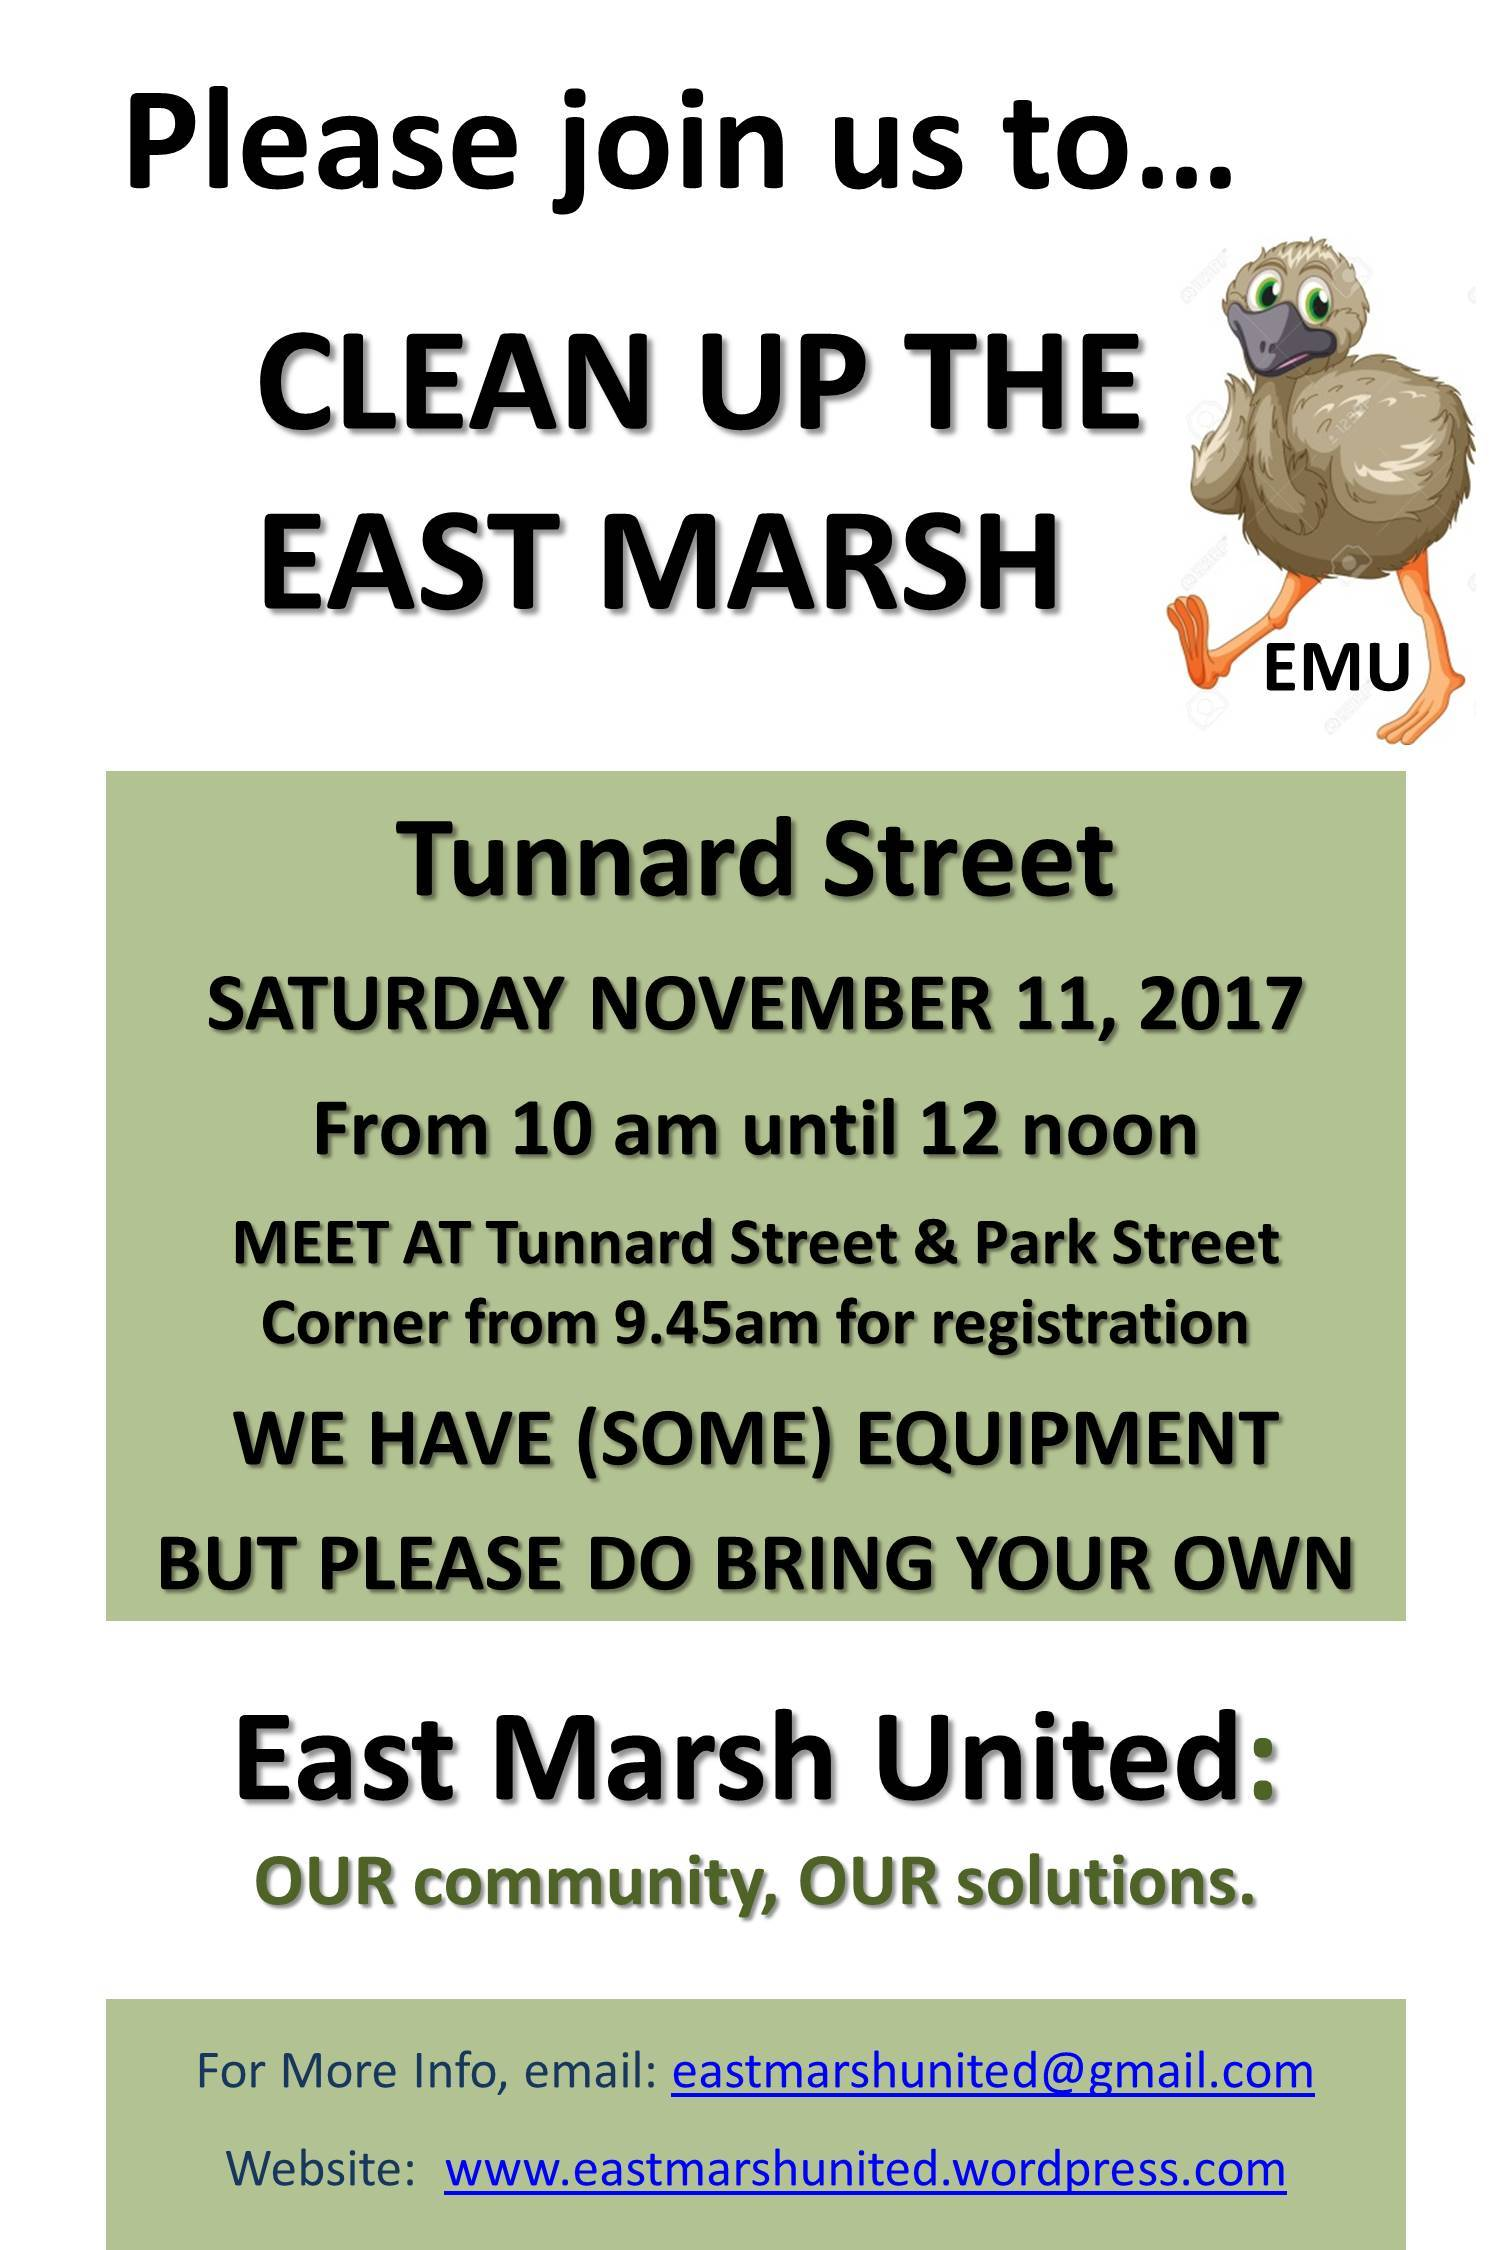 East Marsh United Flyer 2 Tunnard Street